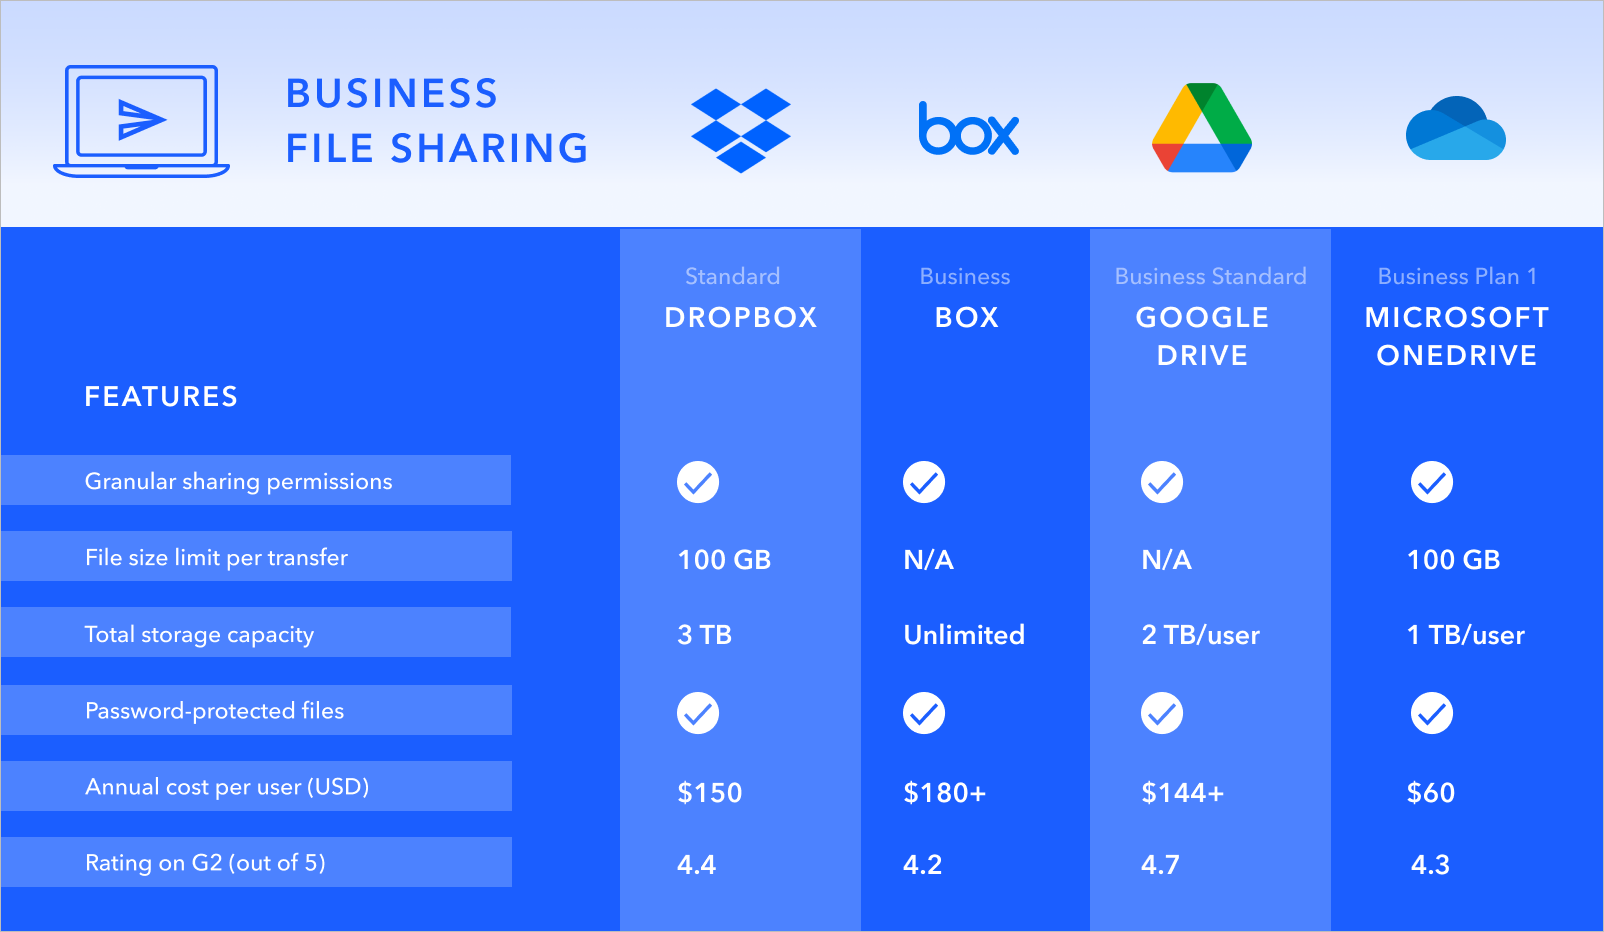 Feature comparison chart for the top business file sharing services